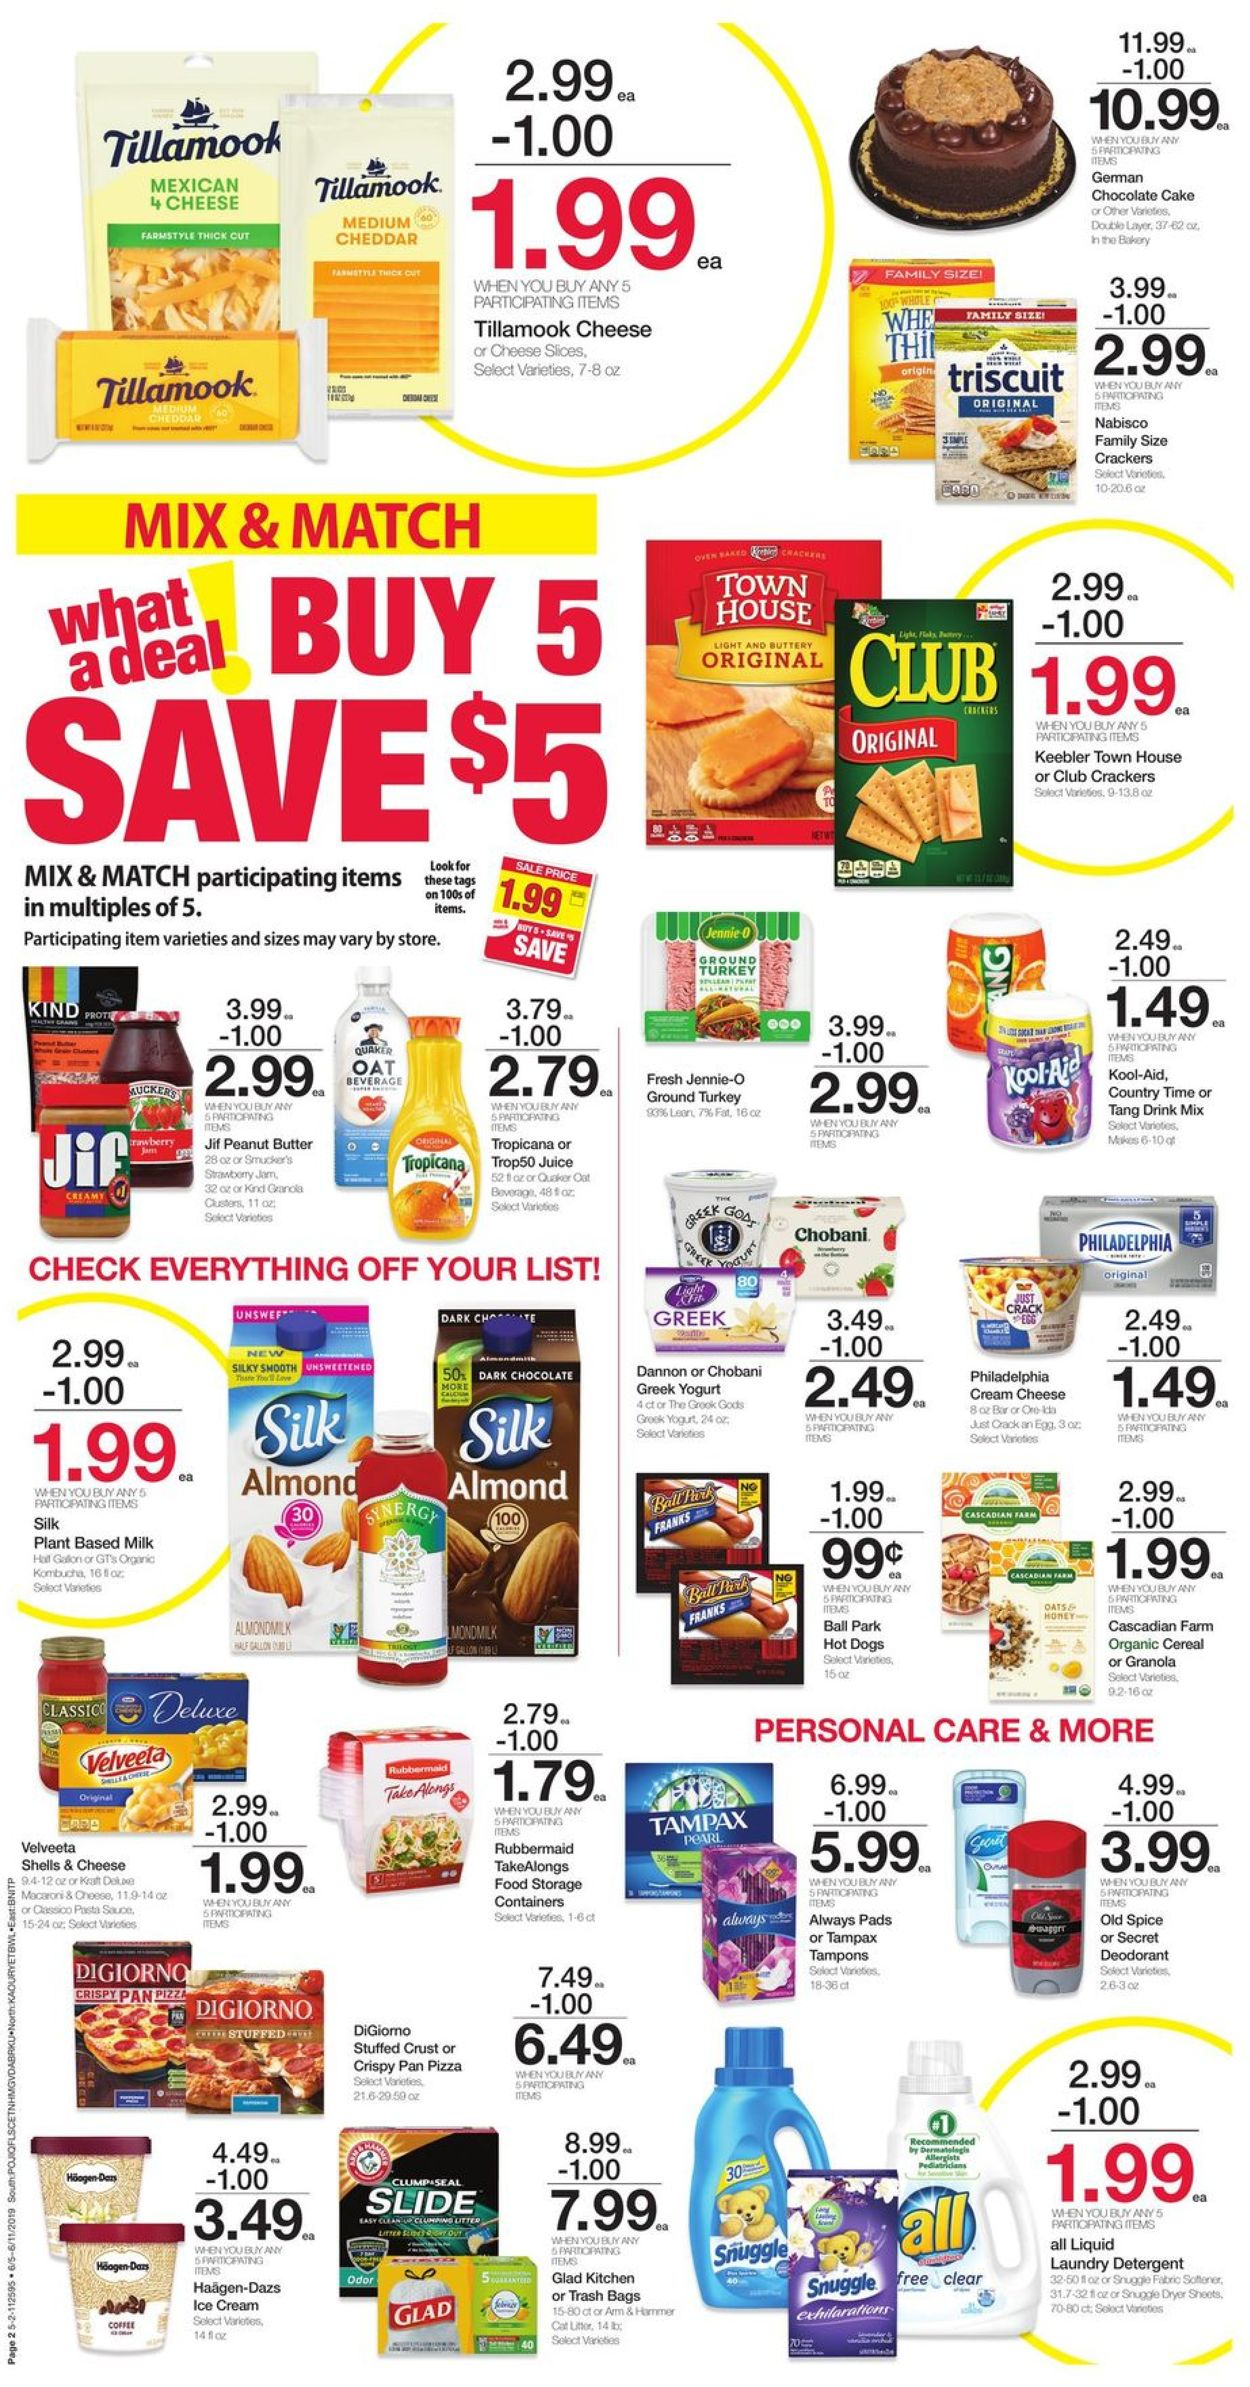 Fred Meyer Current weekly ad 06/05 - 06/11/2019 [3